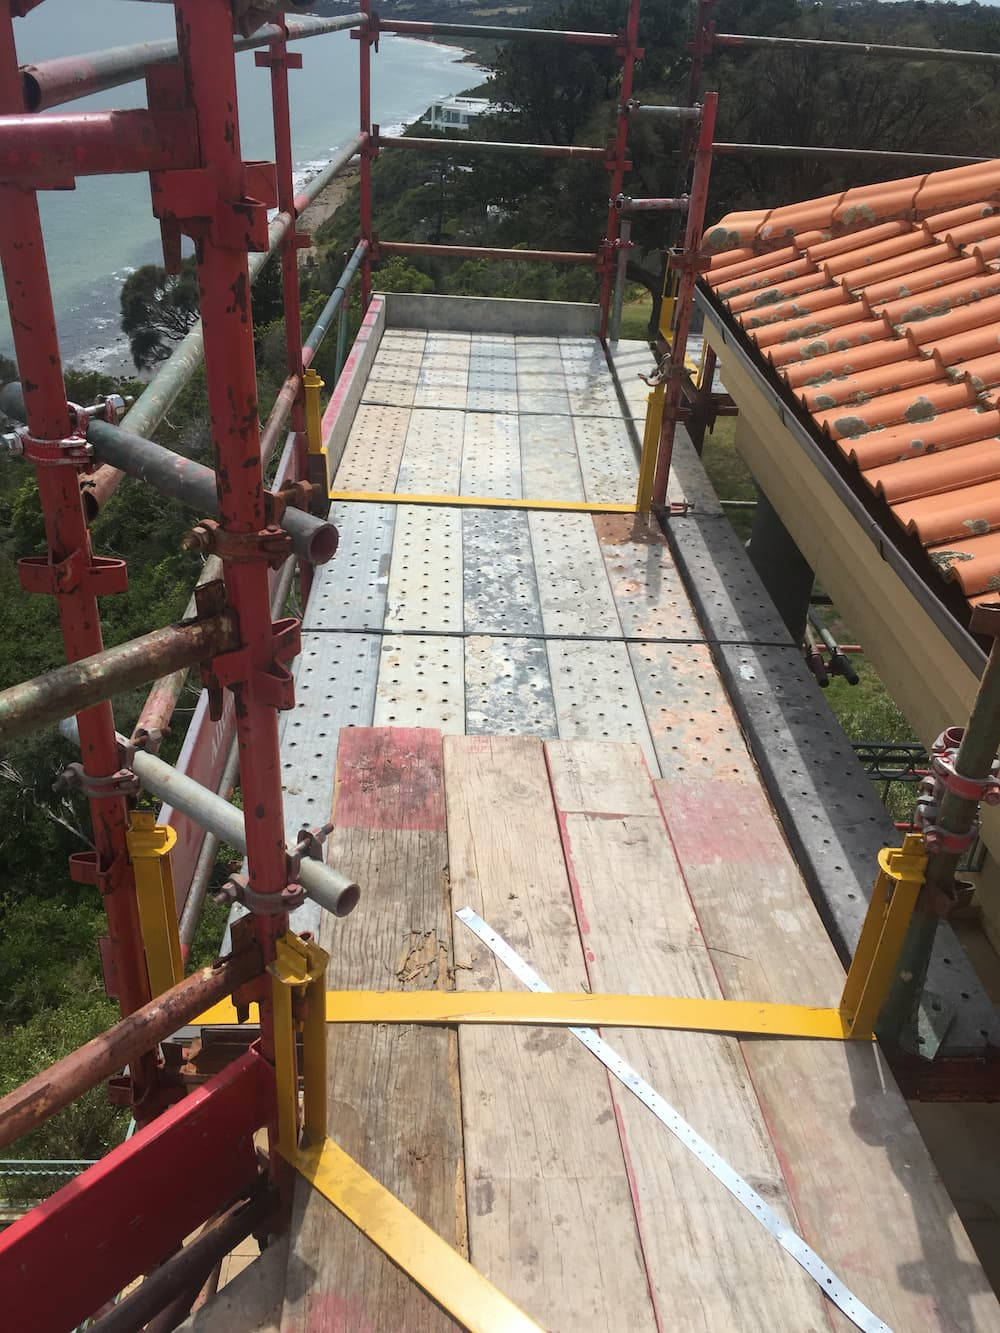 Re-roofing scaffolding on residential property